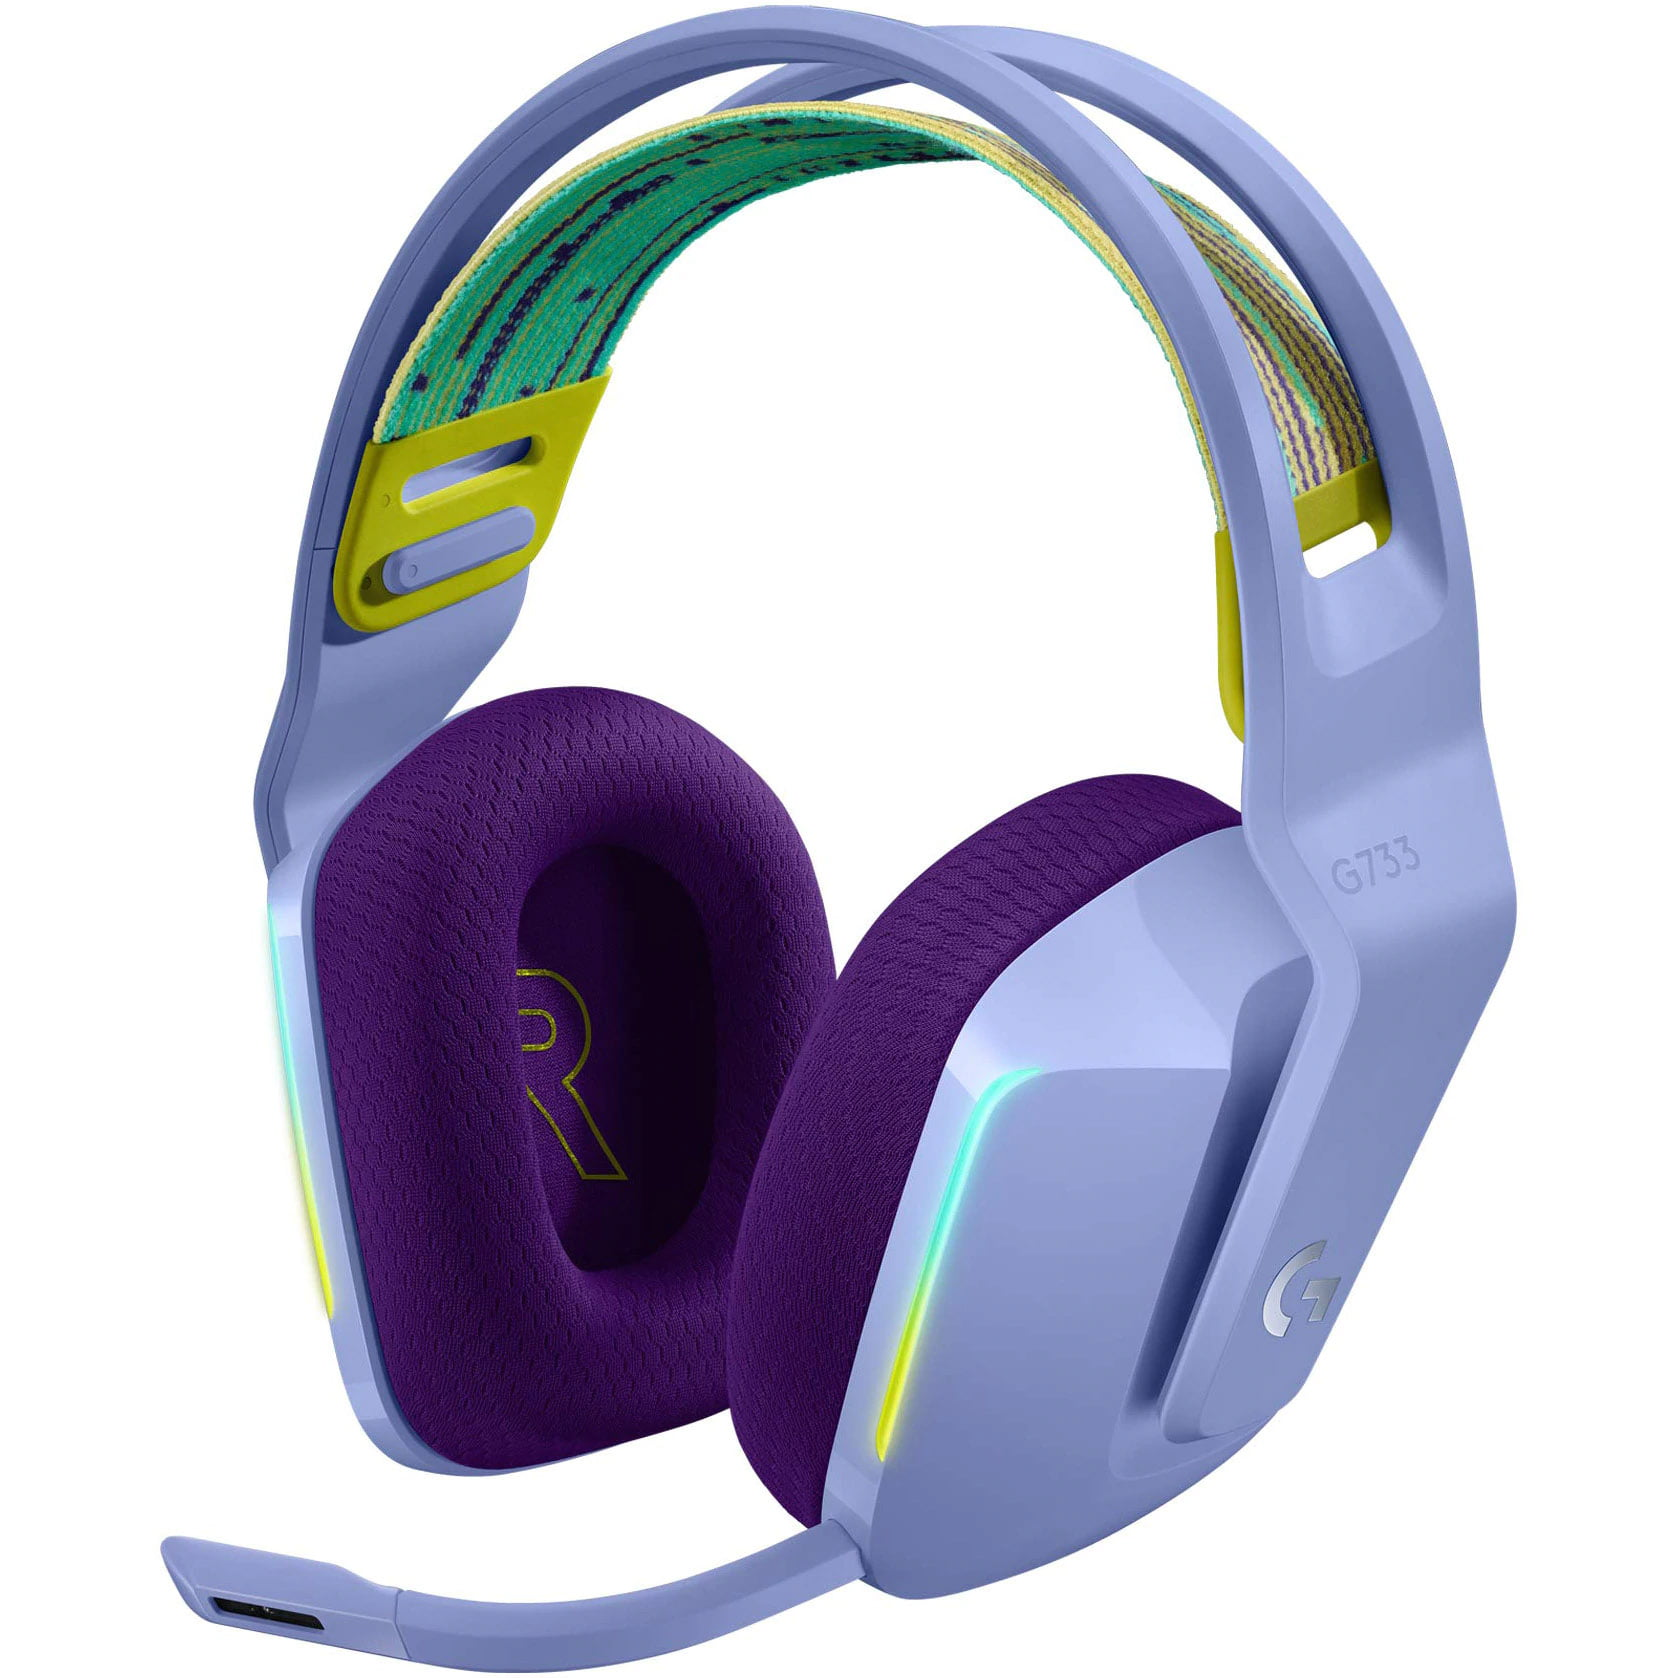 Casti audio Over-Ear Logitech G733, Gaming, Lightsync RGB, Surround Sound 7.1, Lilac